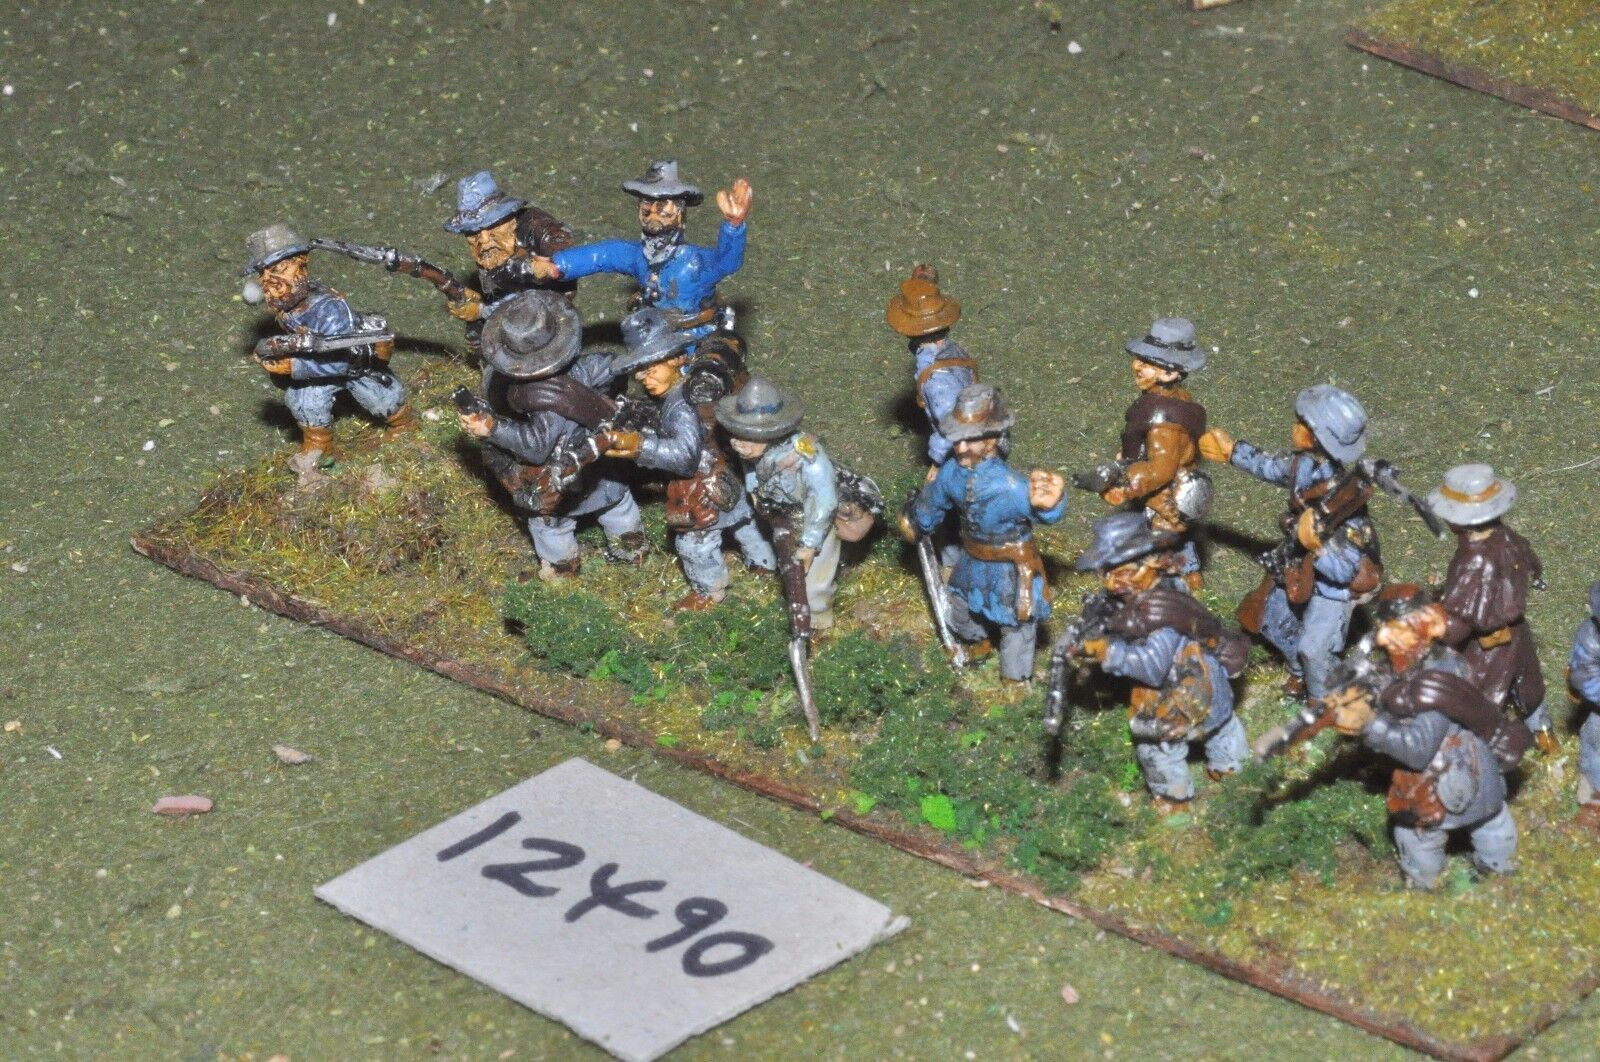 25mm ACW   confederate - american civil war infantry 14 figures - inf (12490)